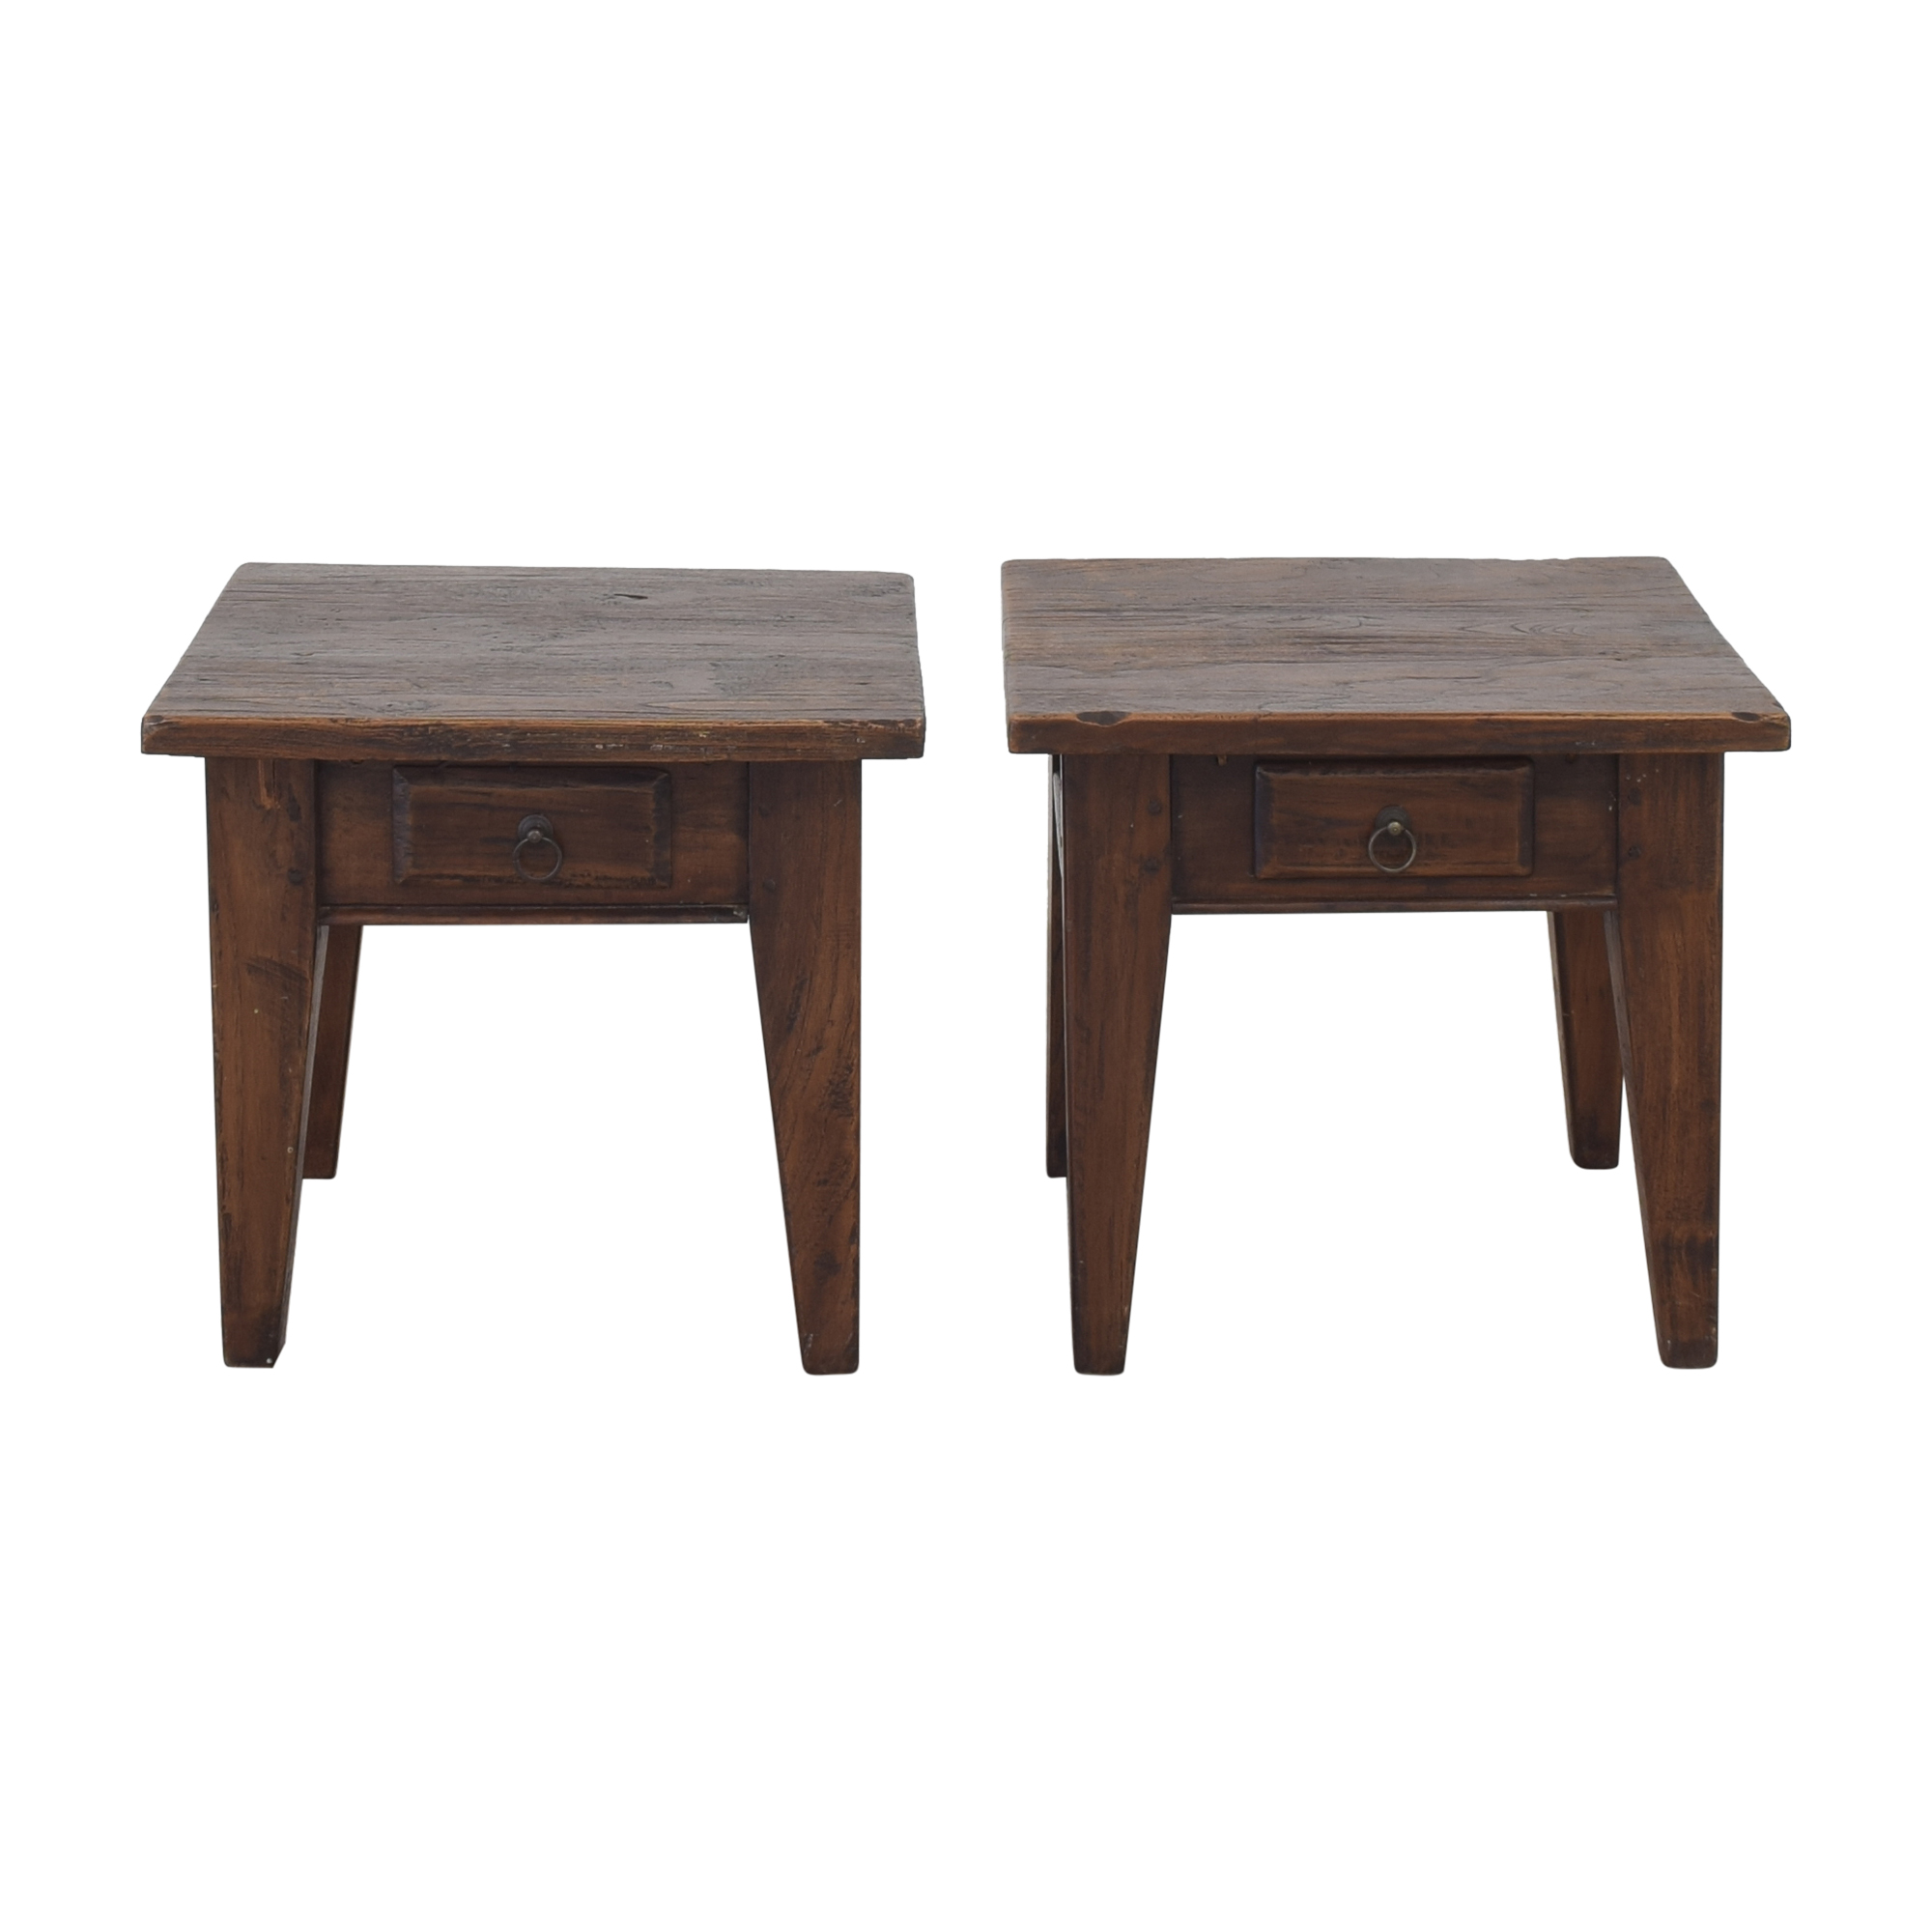 Lillian August Lillian August End Tables